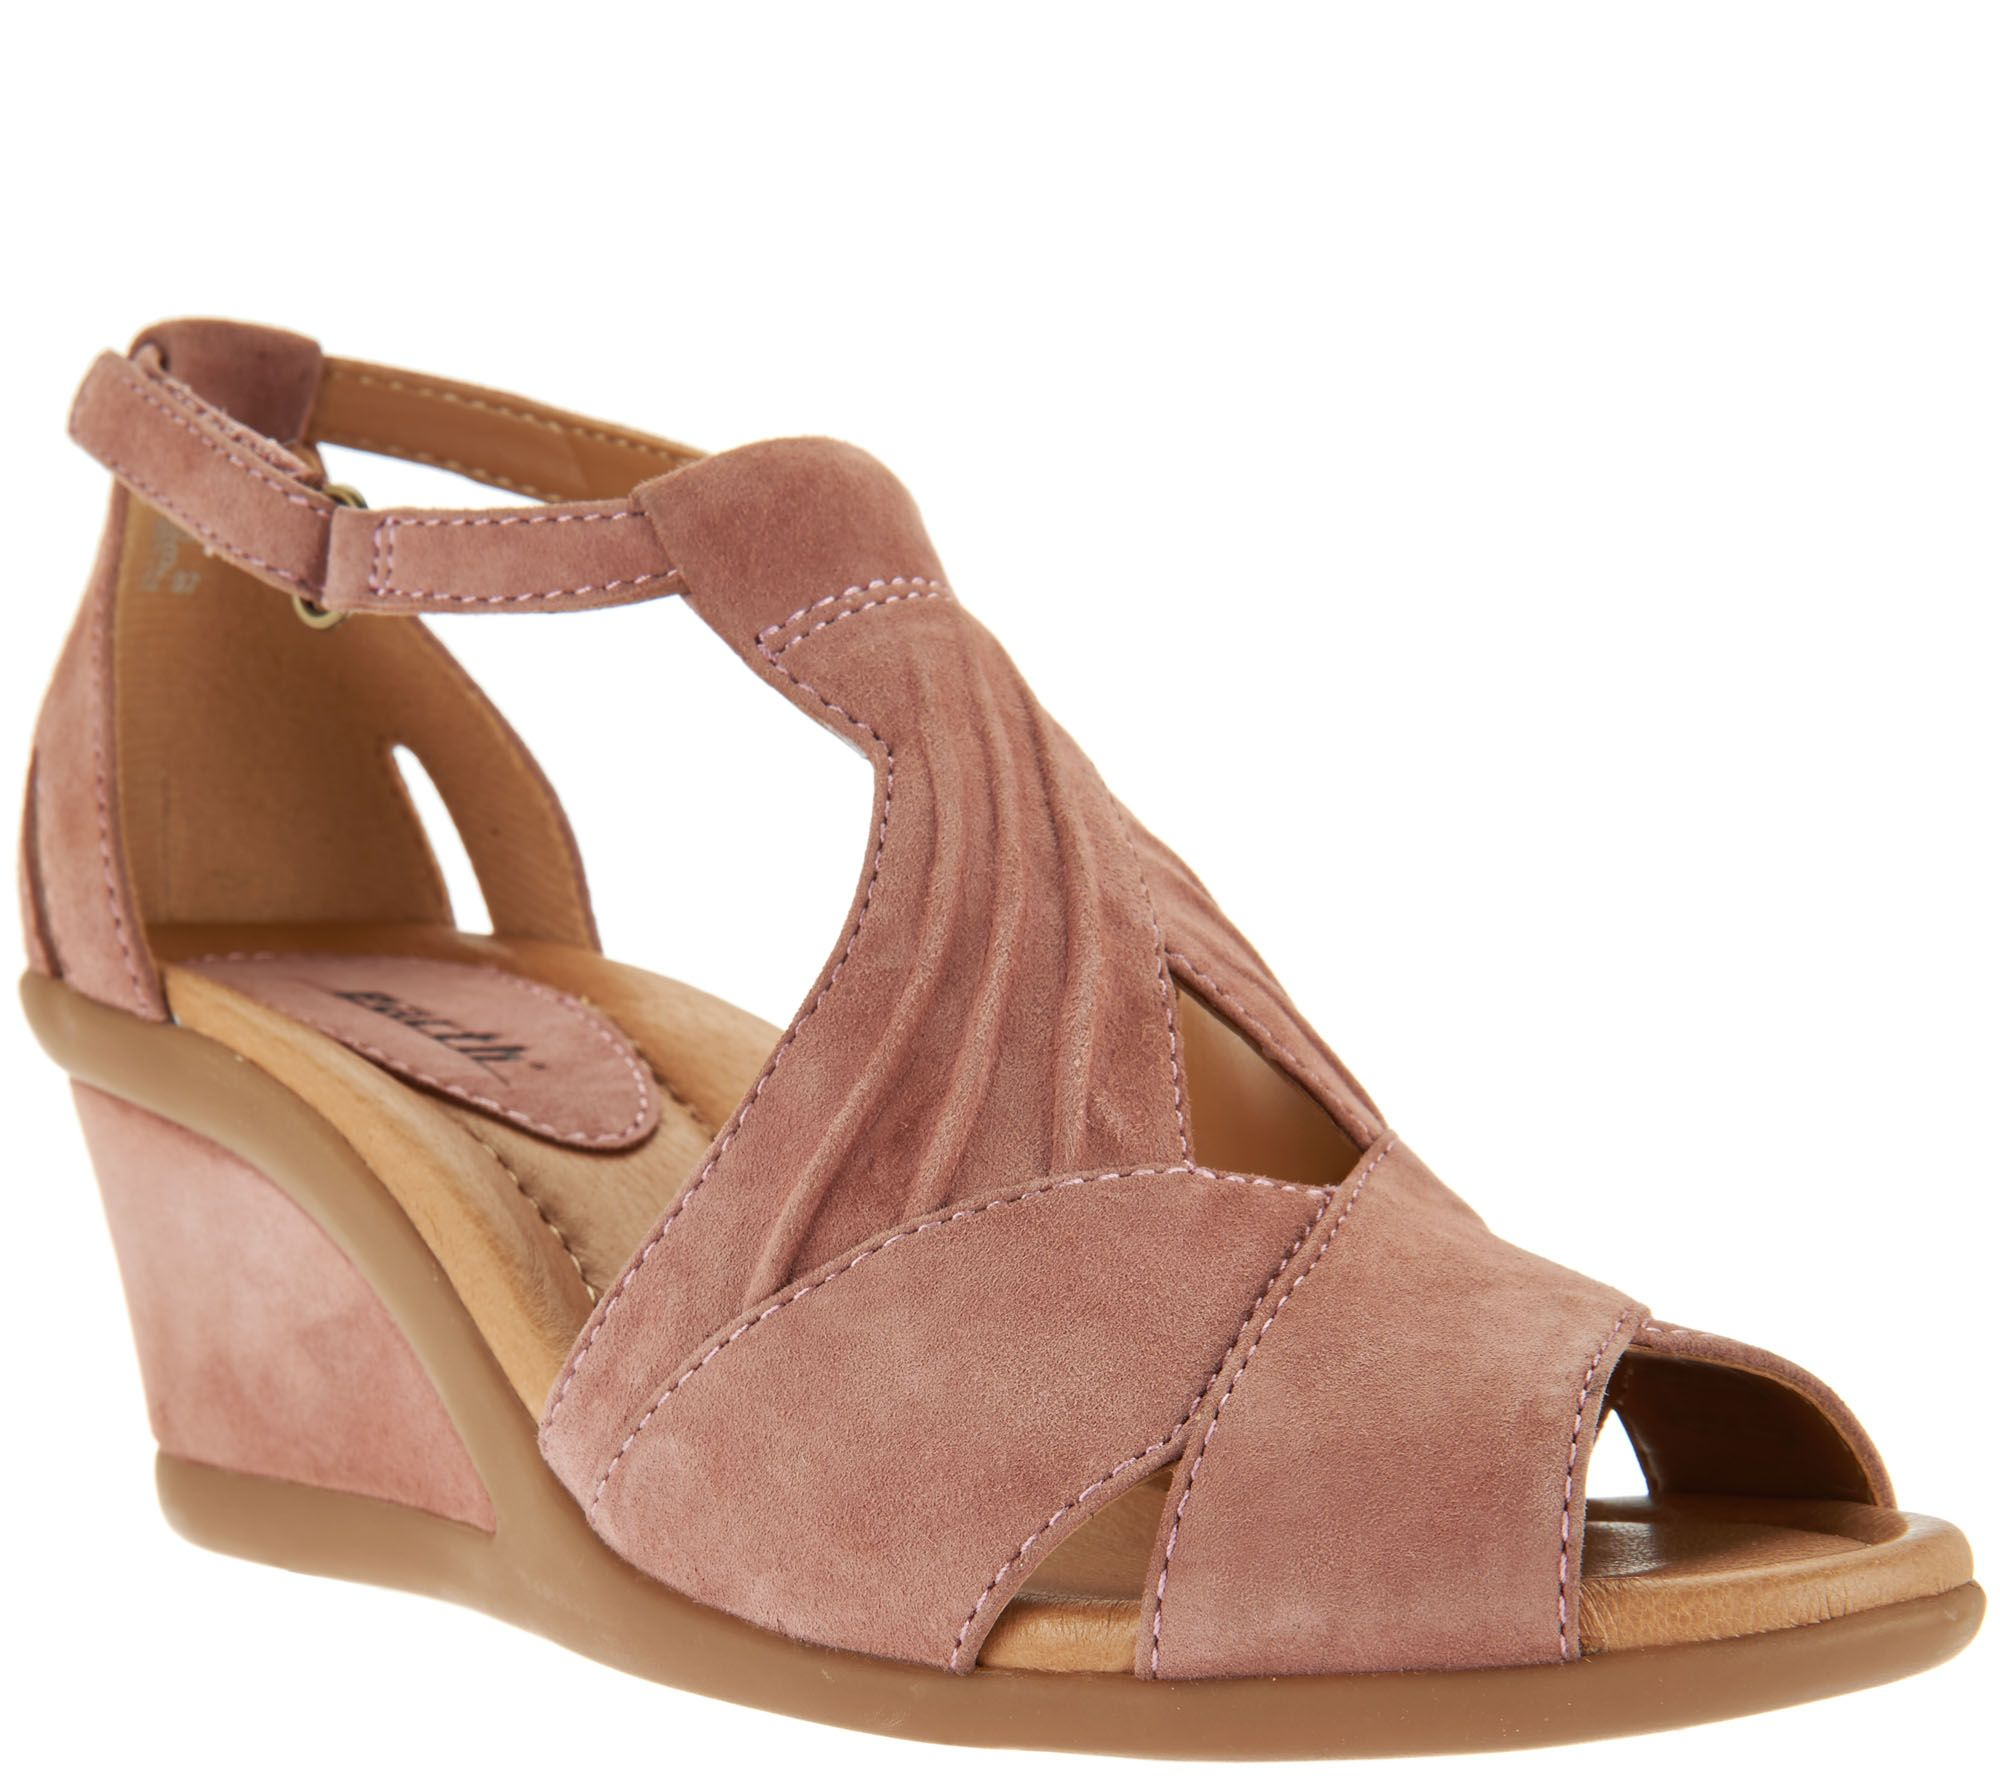 1a7fadf3d27c Earth Suede Peep-Toe Wedge Sandals - Curvet - Page 1 — QVC.com